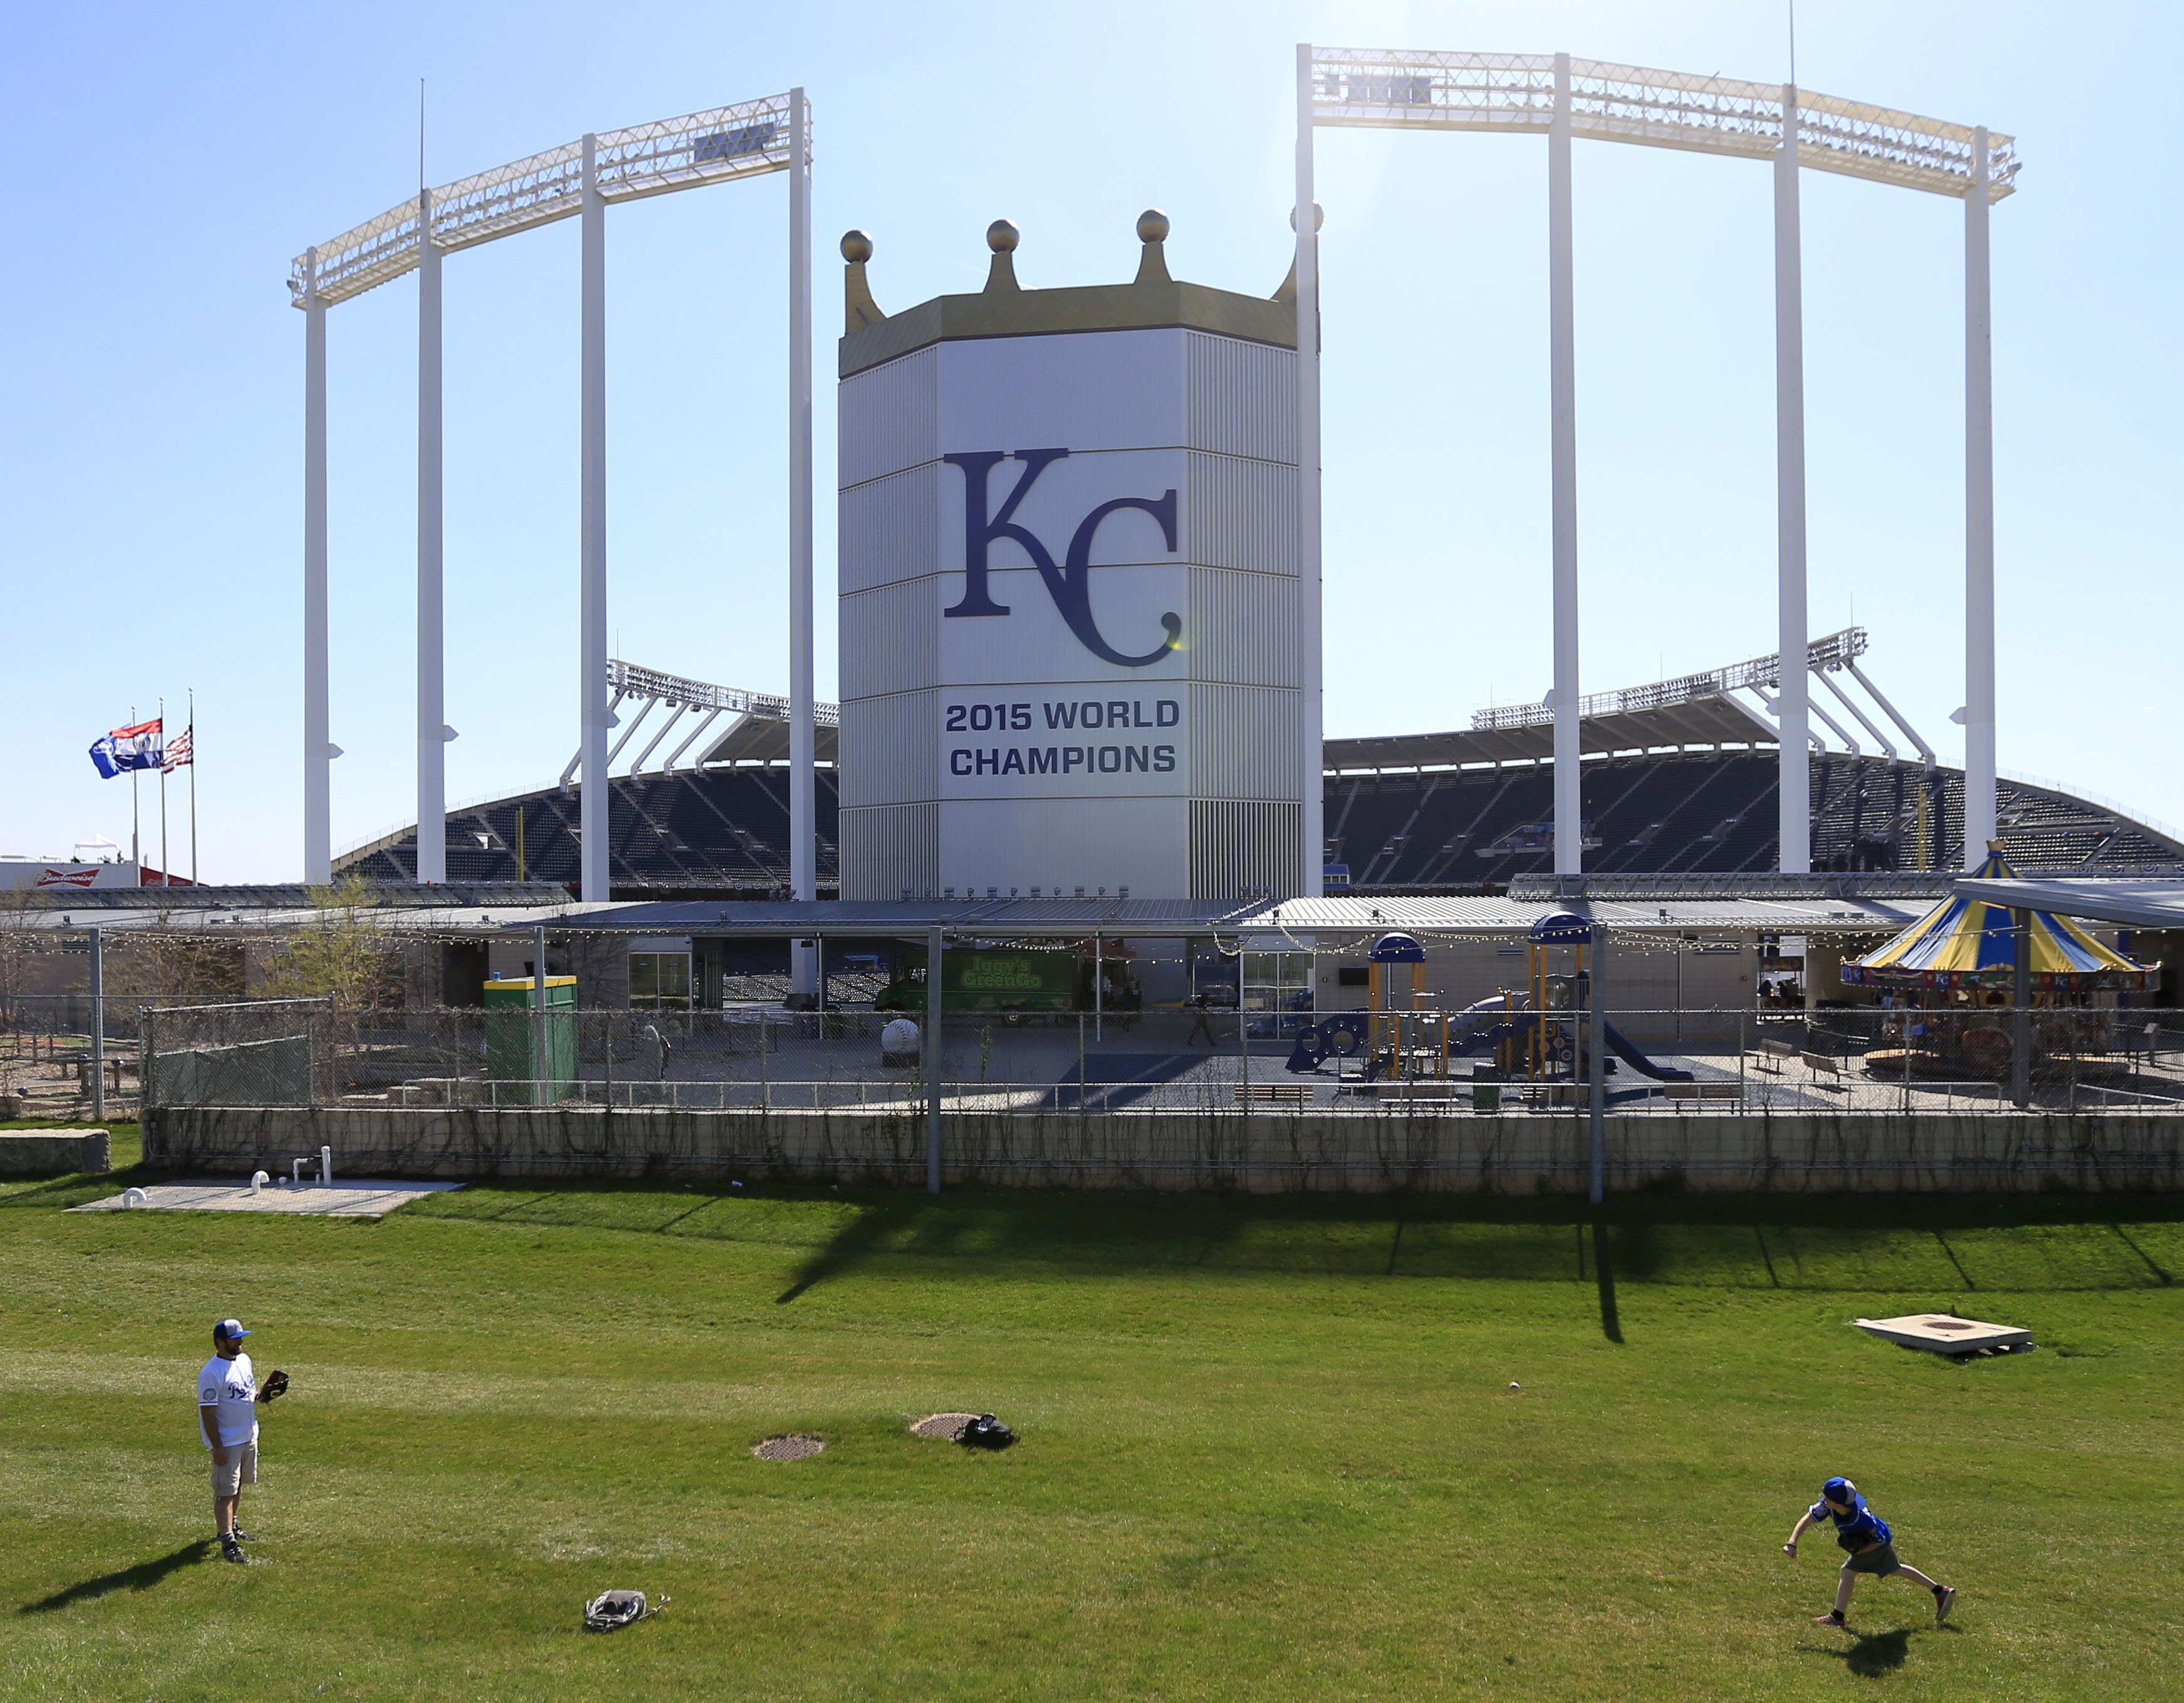 Jason, left, and Joshua Neland play catch behind the scoreboard at Kauffman Stadium before a Major League Baseball opening day game between the Kansas City Royals and the New York Mets in Kansas City, Mo., Sunday, April 3, 2016. (AP Photo/Orlin Wagner)